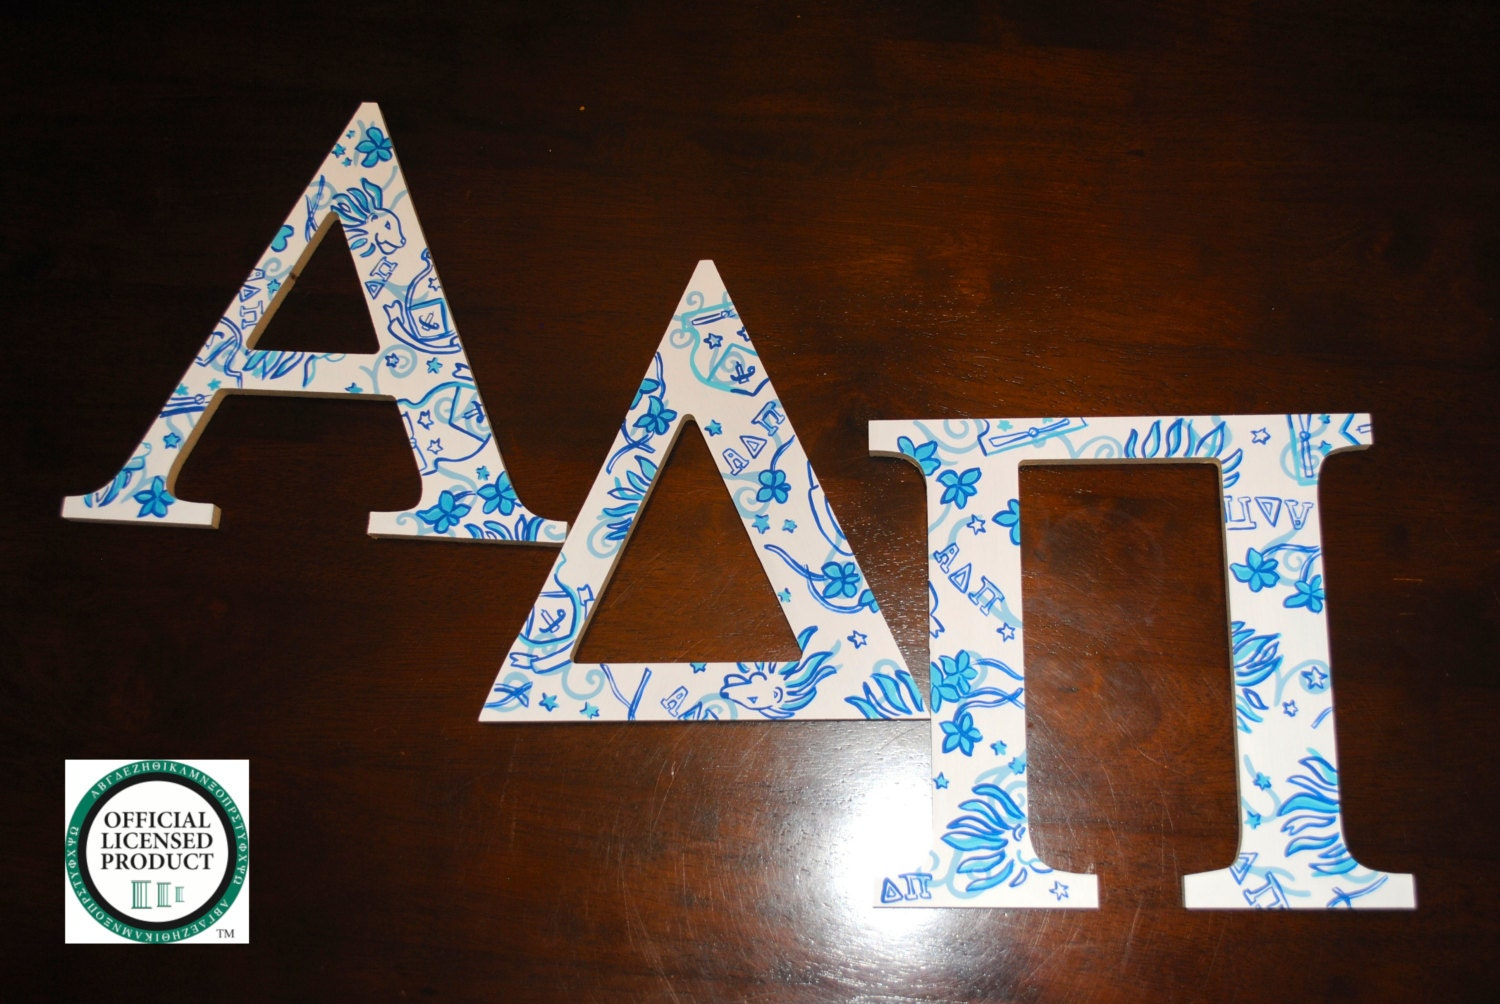 8in alpha delta pi wooden greek letters With alpha delta pi wooden letters